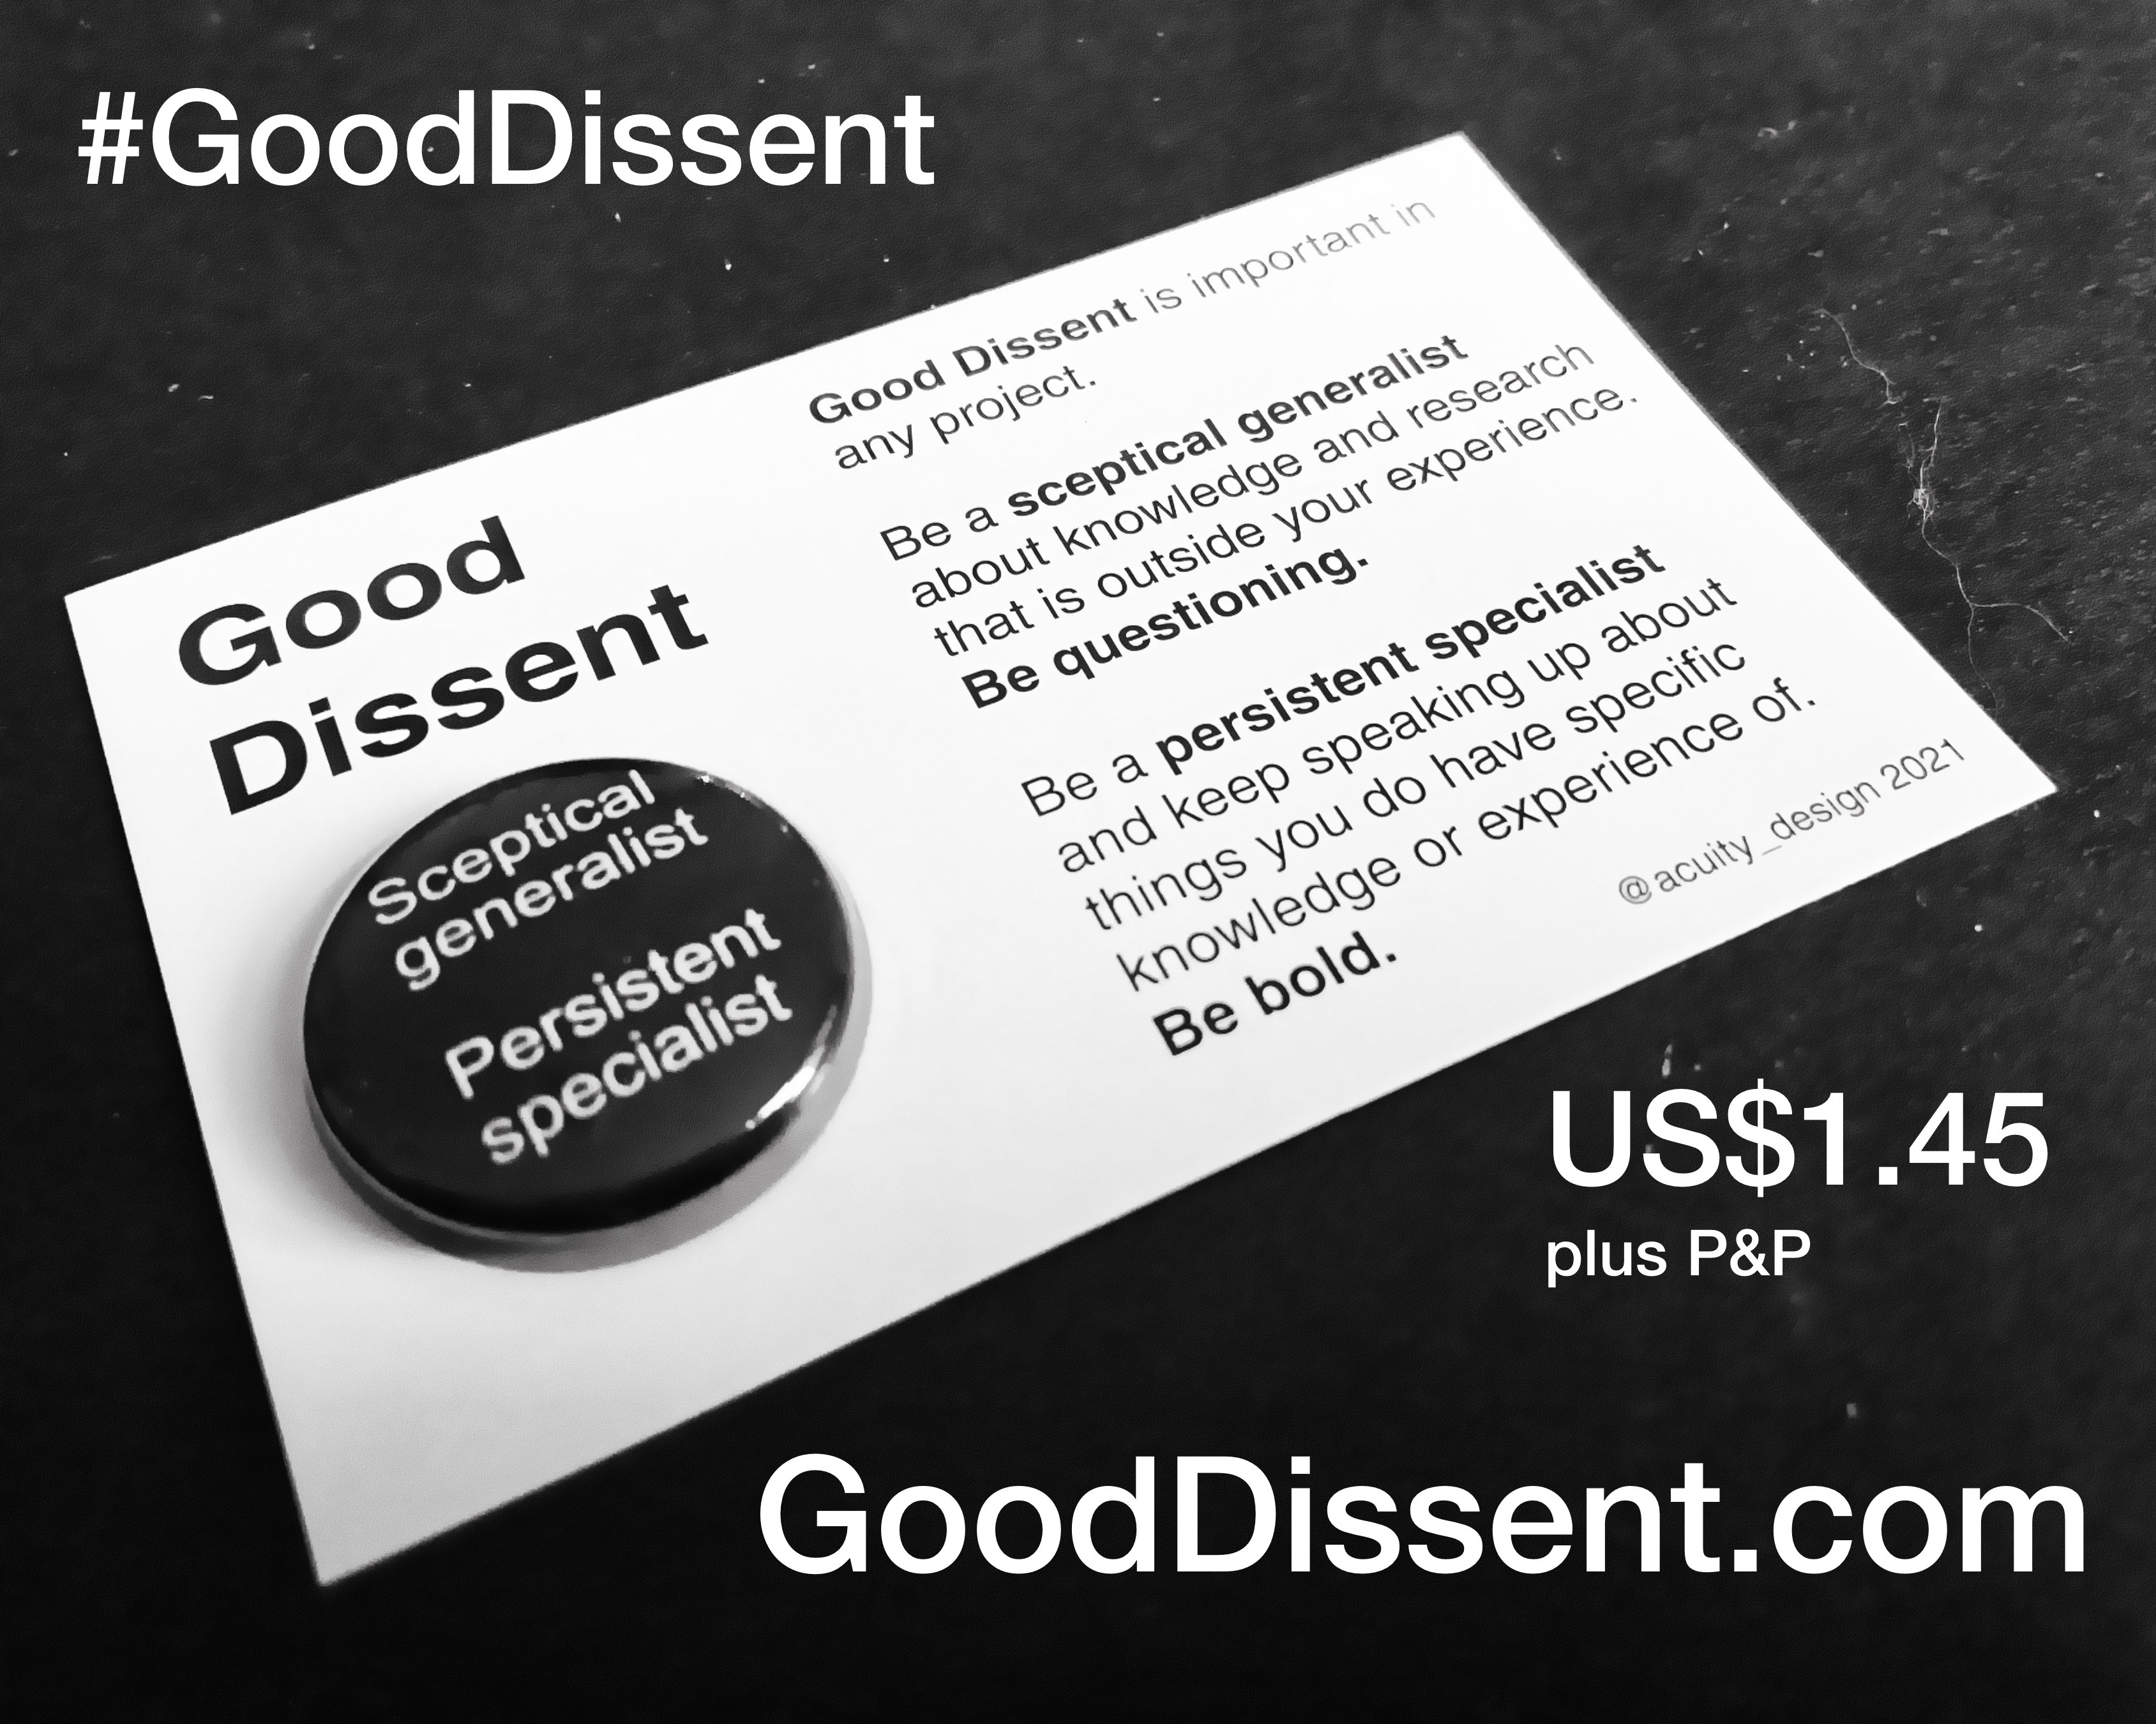 Good Dissent badge on card with noth of $1.45 cost and web address ar gooddissent.com